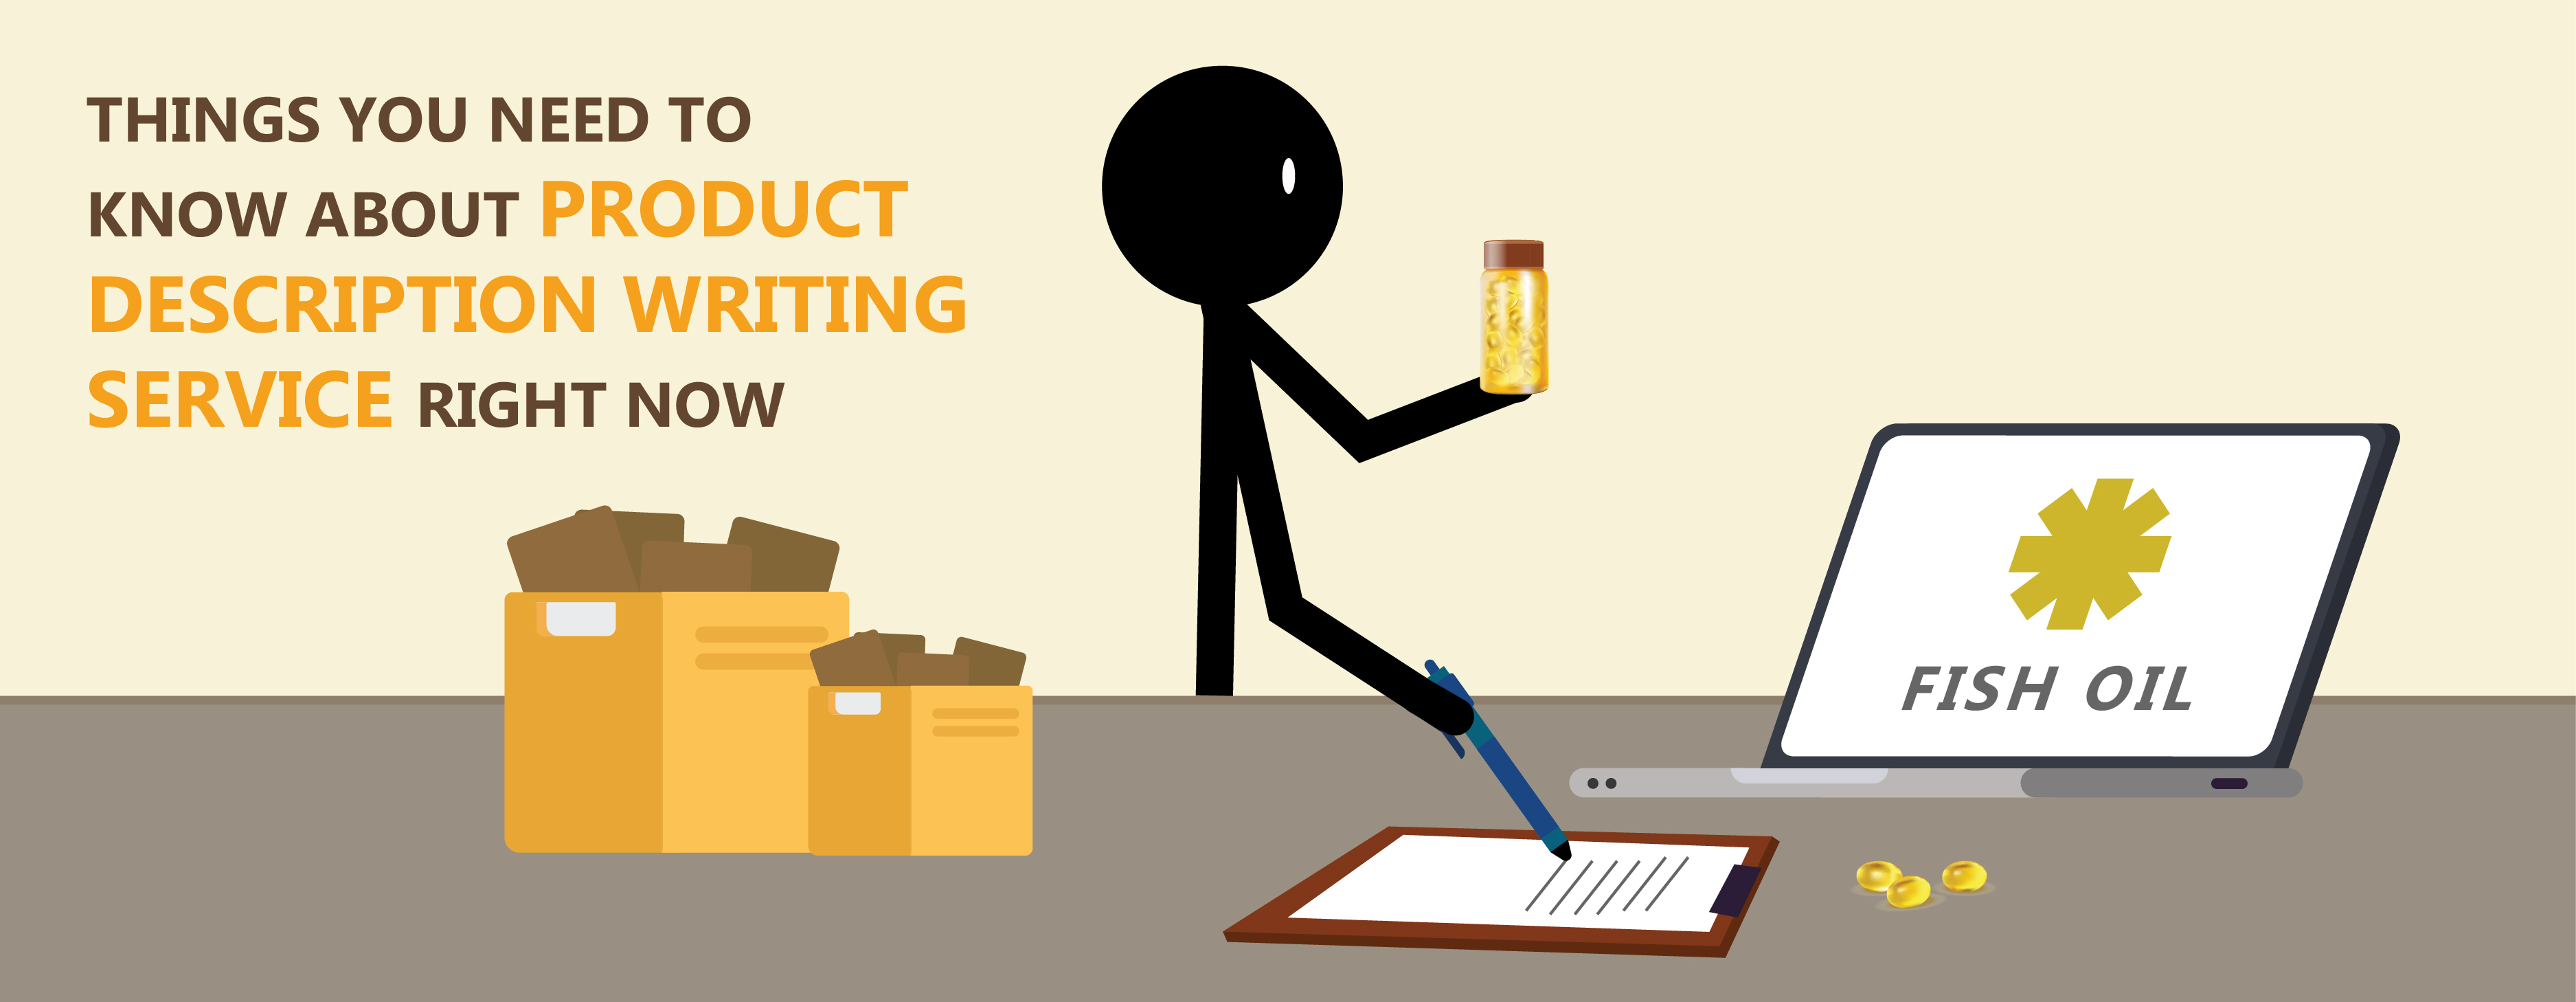 Things You Need to Know About Product Description Writing Service Right Now